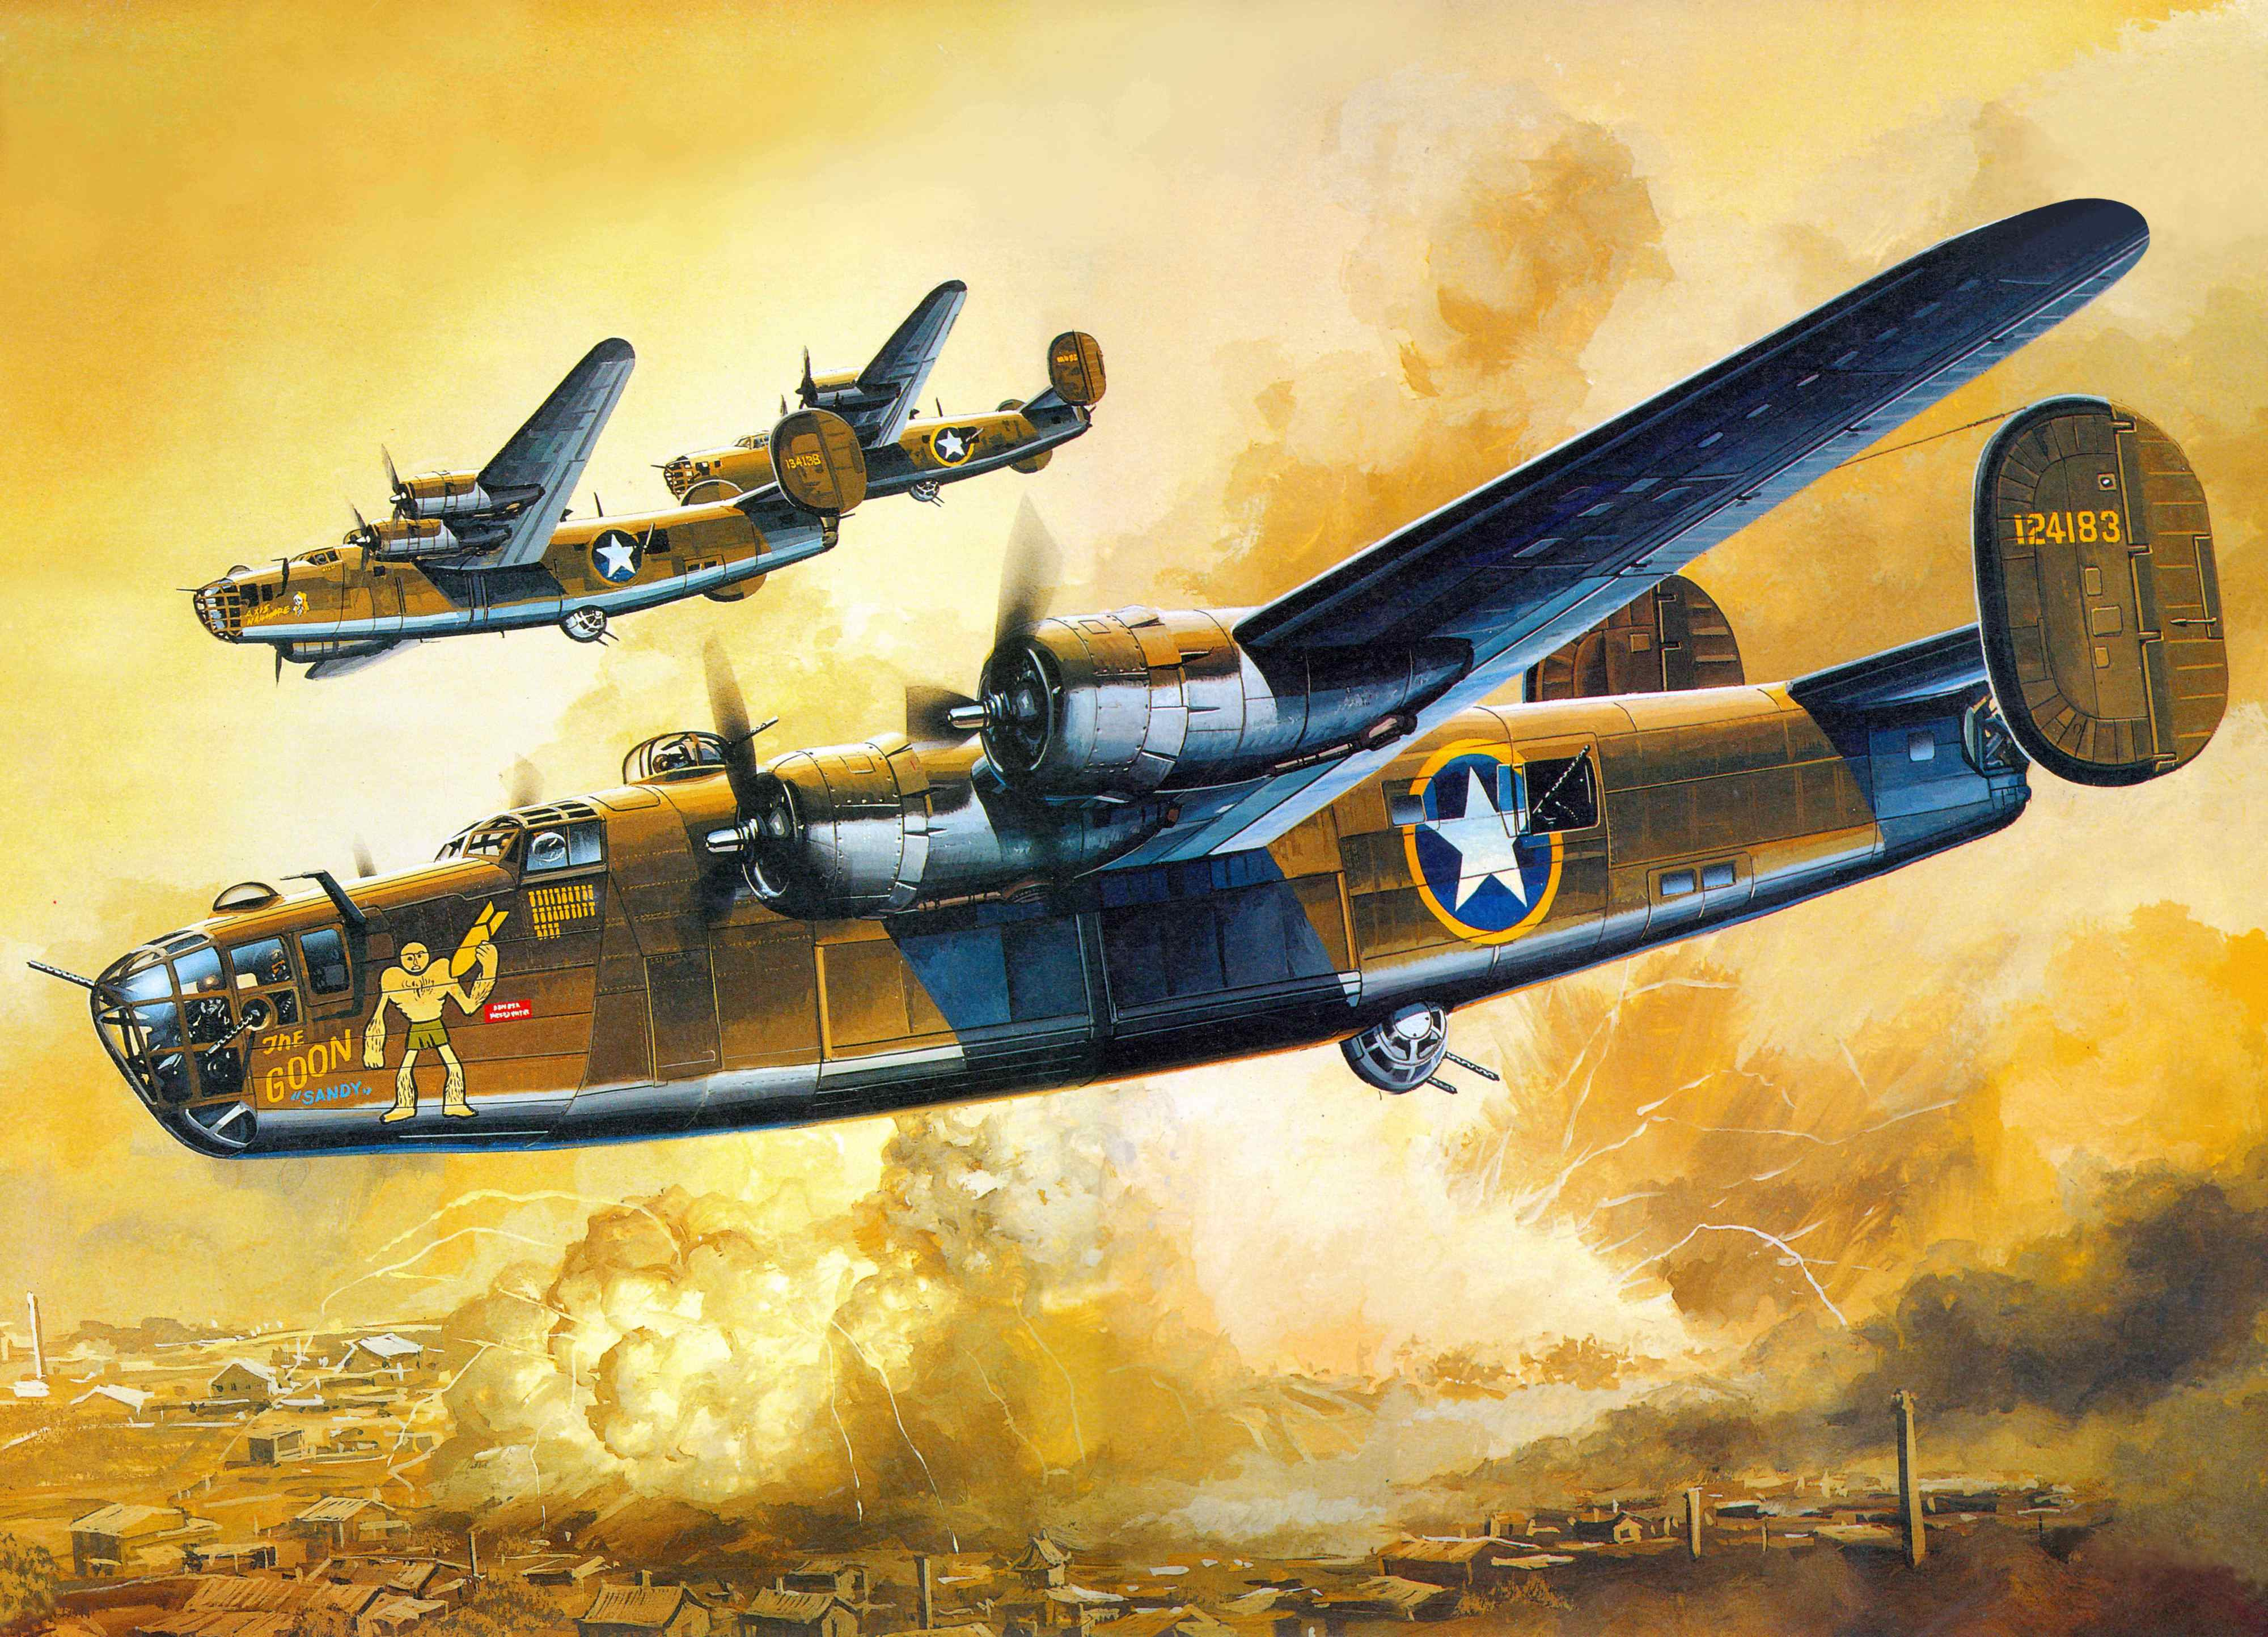 4000x2888 - Consolidated B-24 Liberator Wallpapers 6